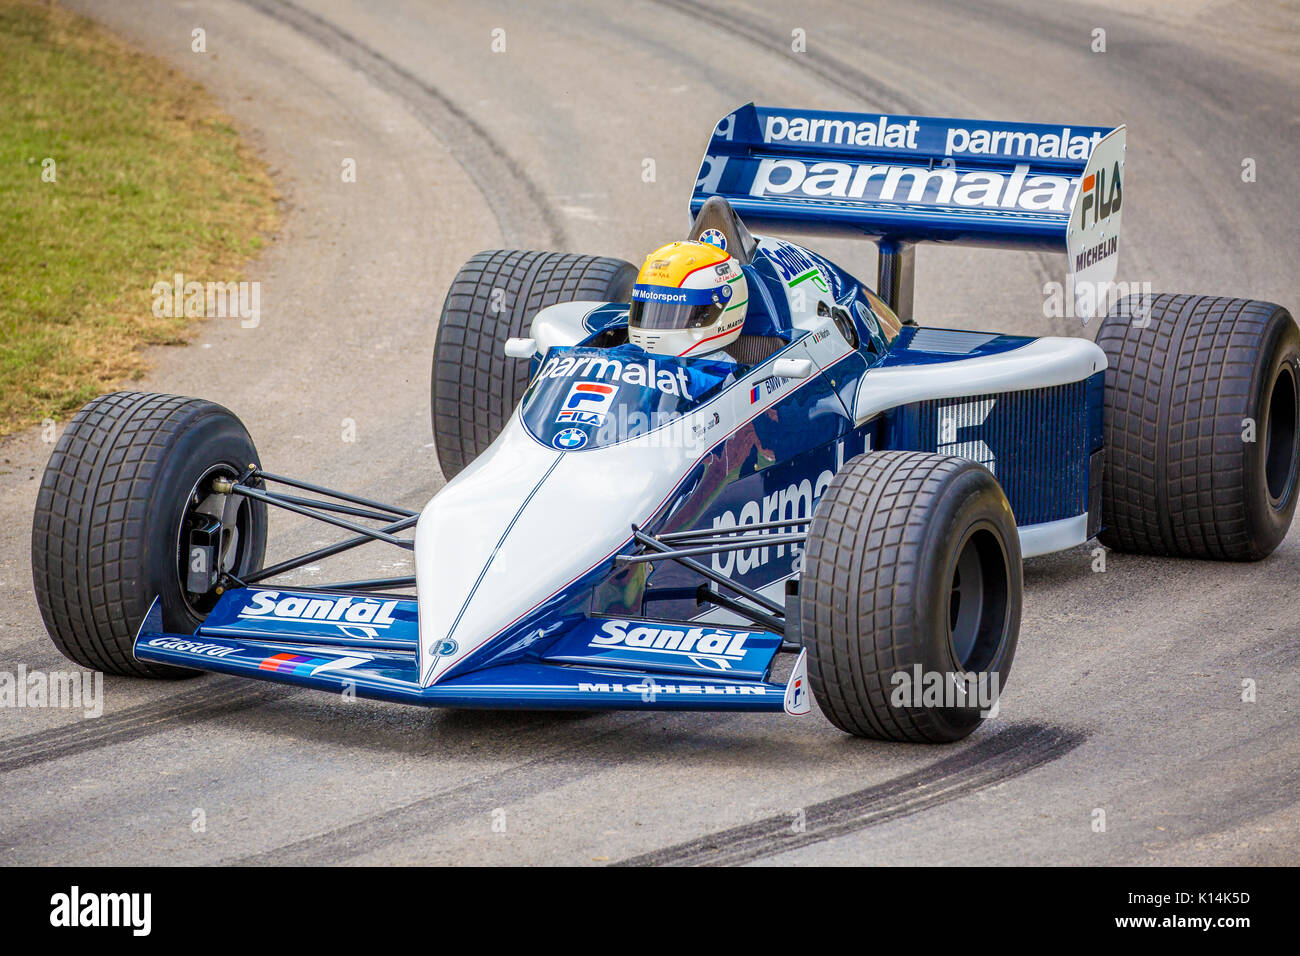 1983 Brabham-BMW BT52 F1 car with driver Riccardo Patrese at the ...